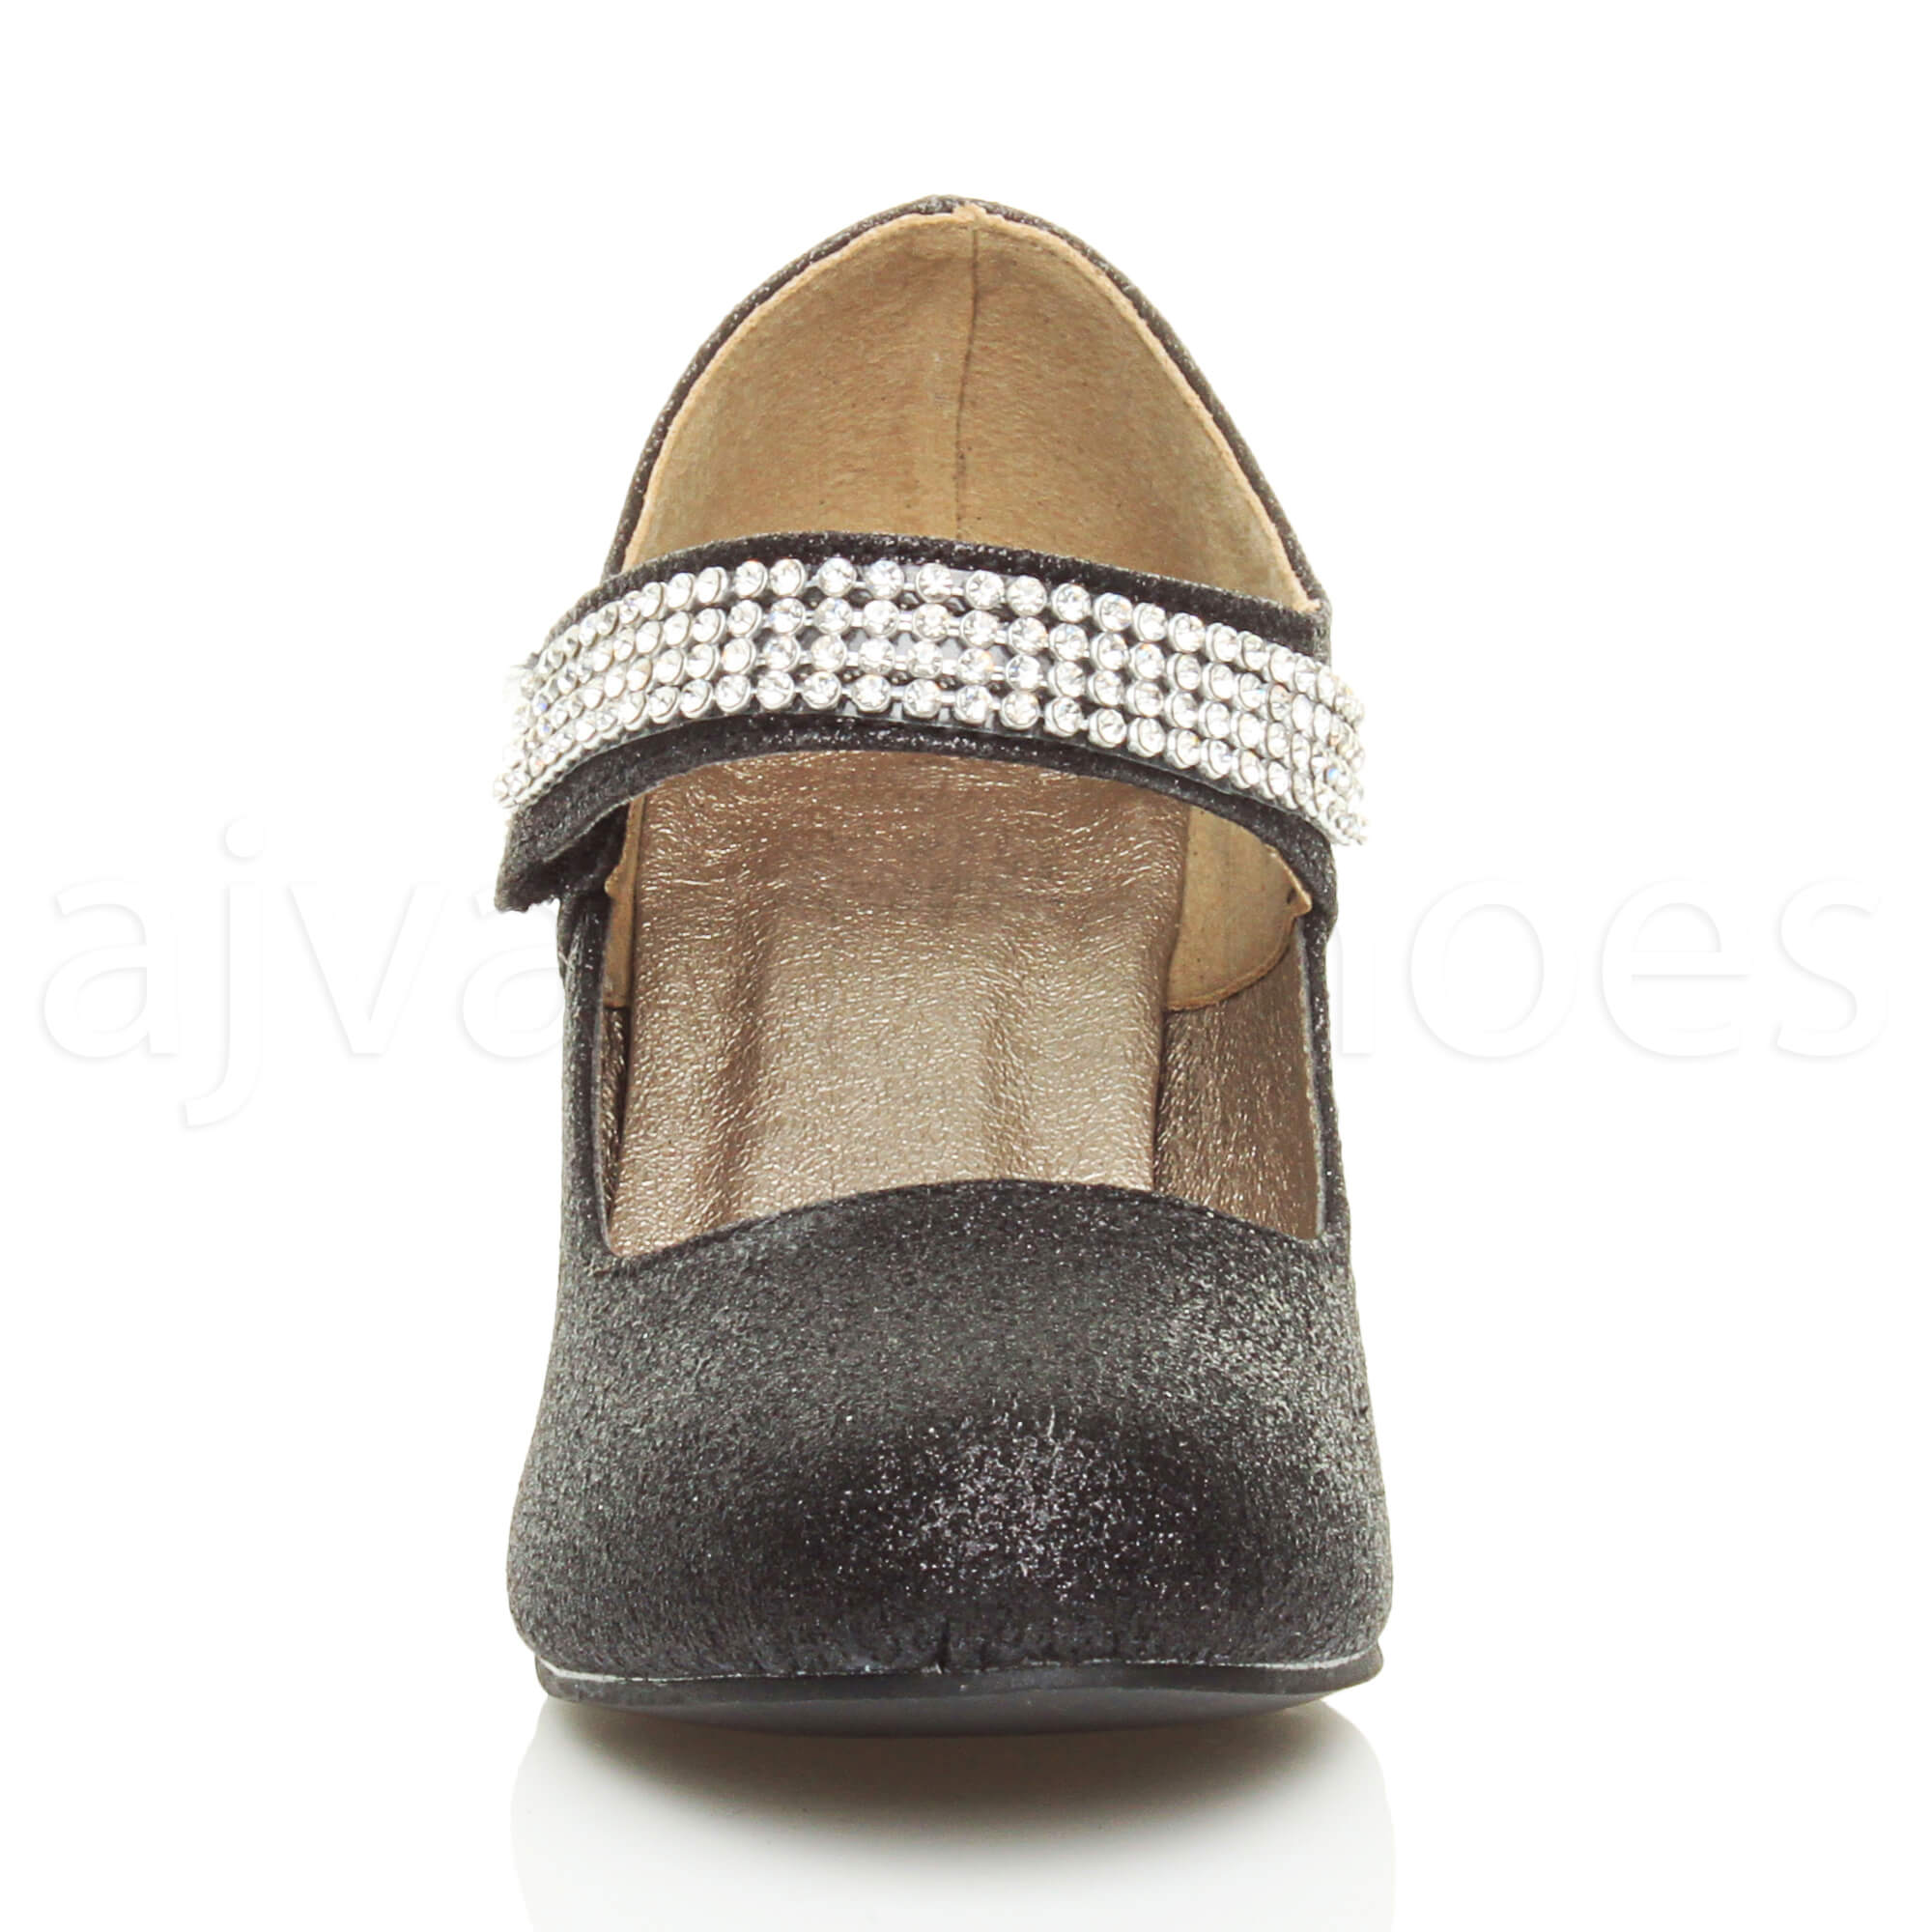 GIRLS-KIDS-CHILDRENS-LOW-HEEL-PARTY-WEDDING-MARY-JANE-STYLE-SANDALS-SHOES-SIZE